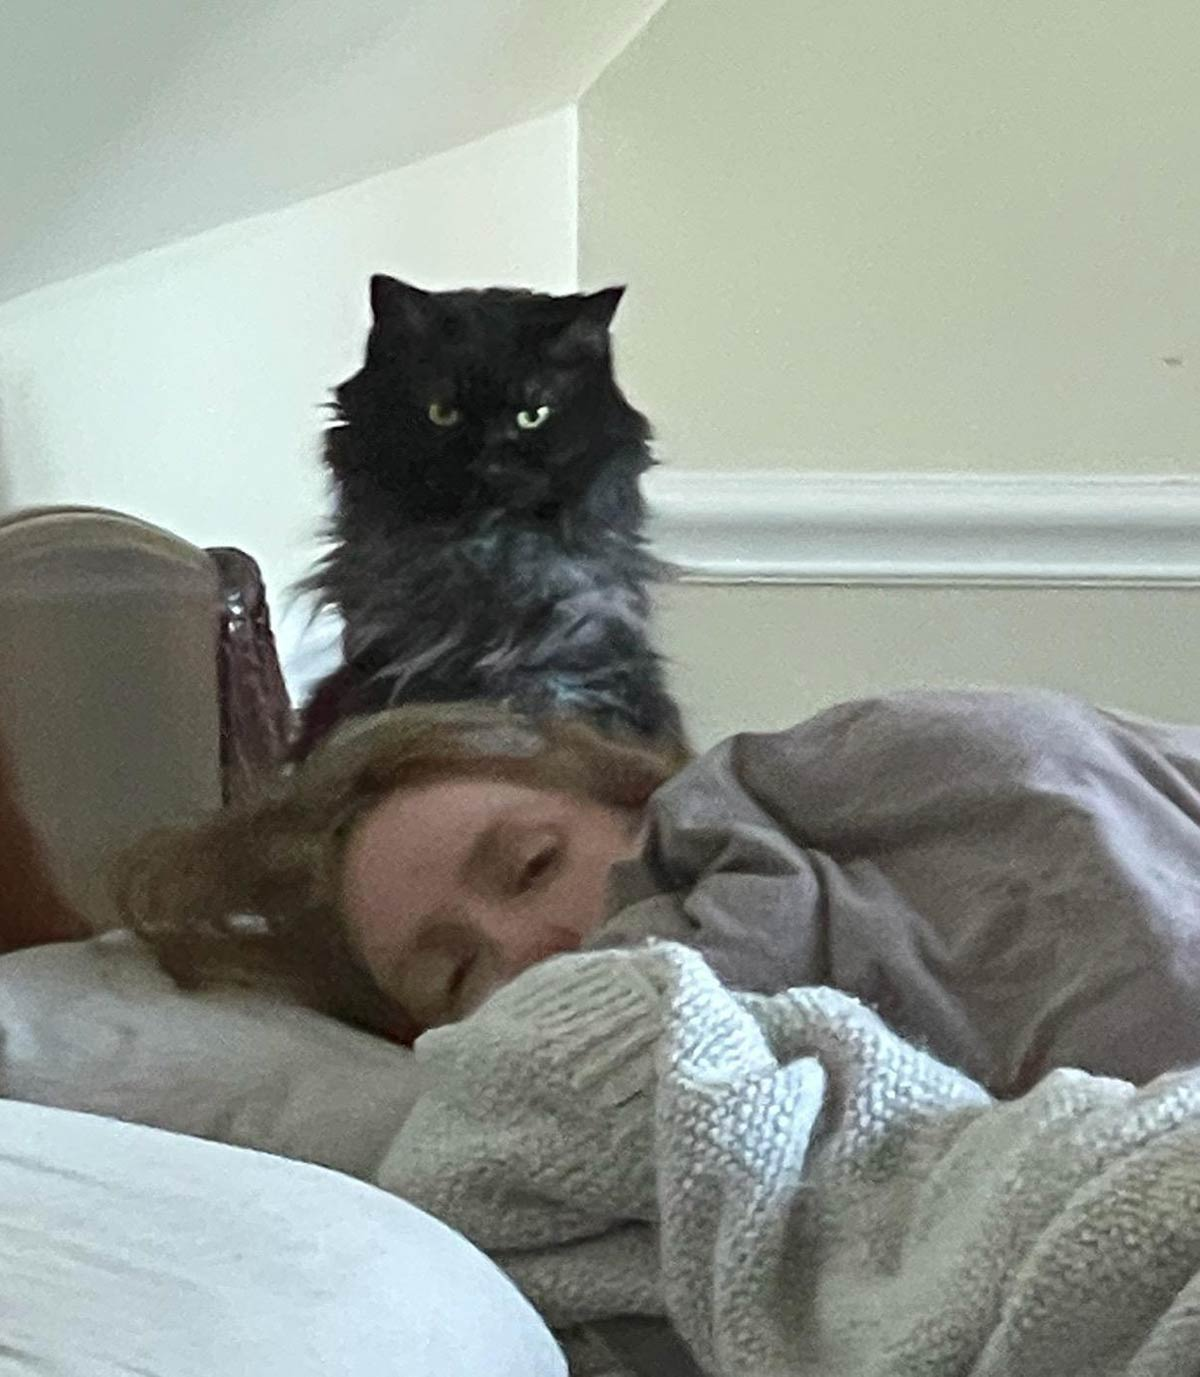 Husband caught our cat hovering over my sleeping body